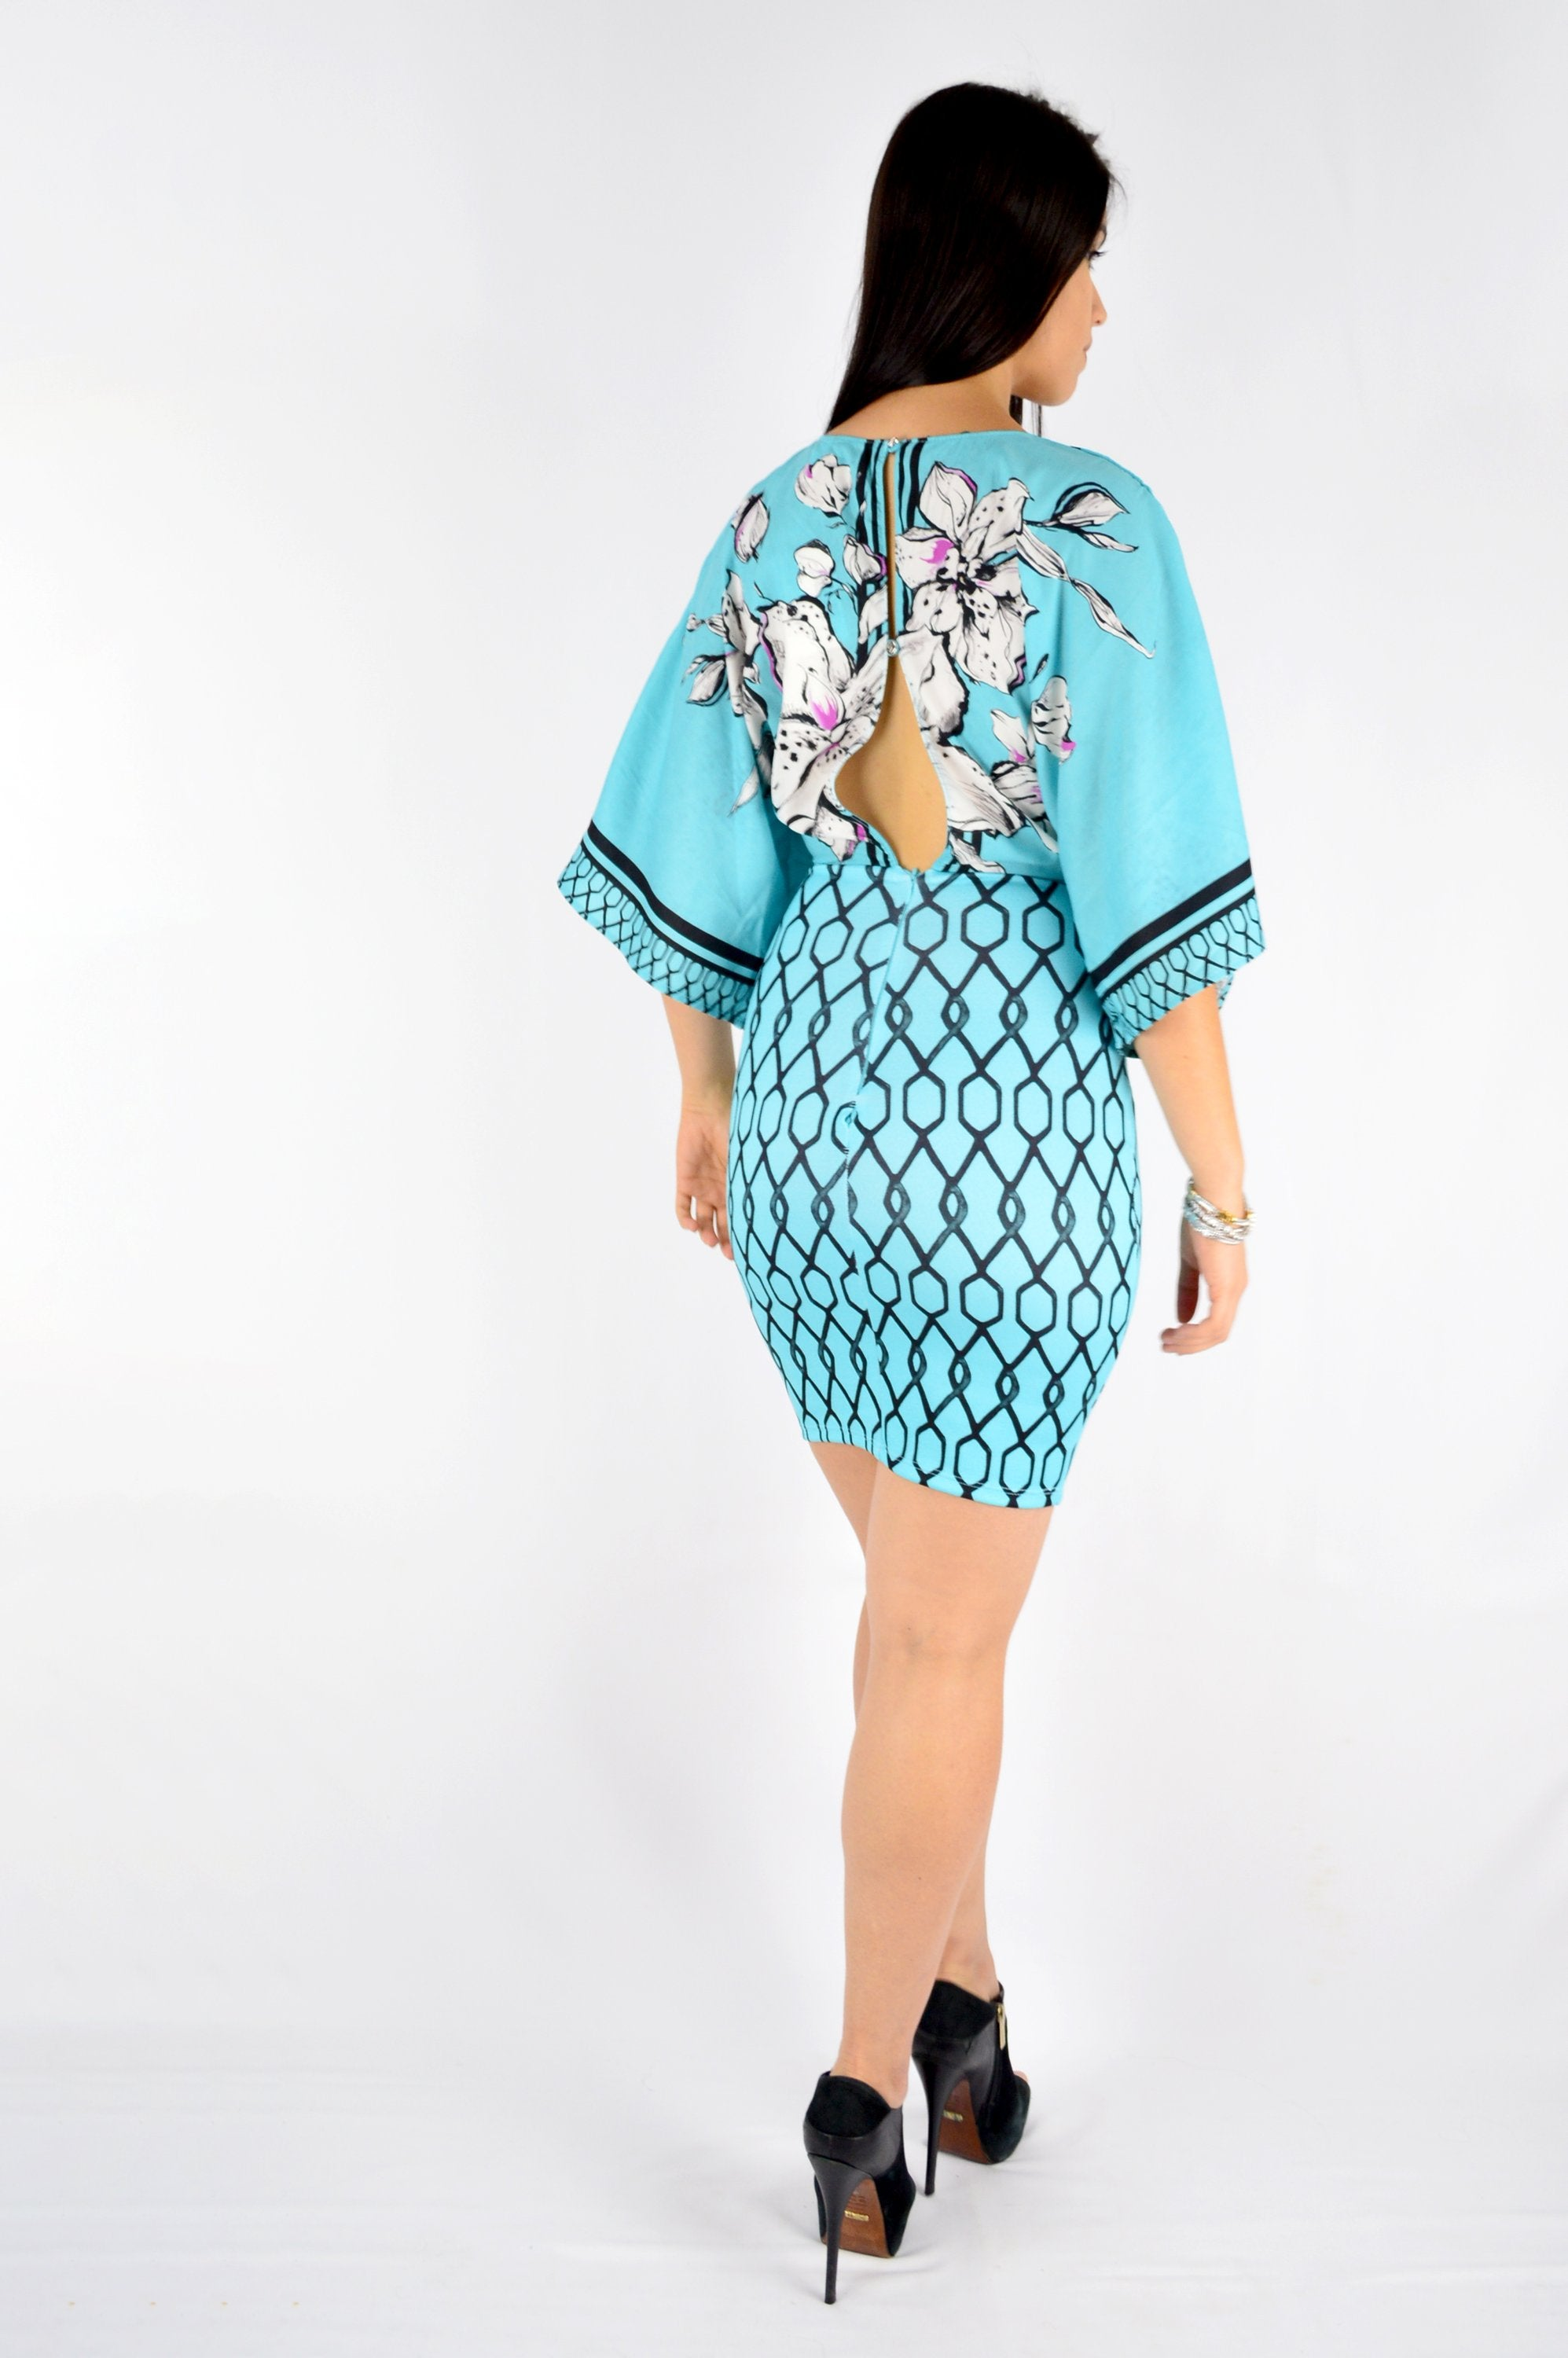 DRESS-WIDE SLEEVE PRINTED in TEAL